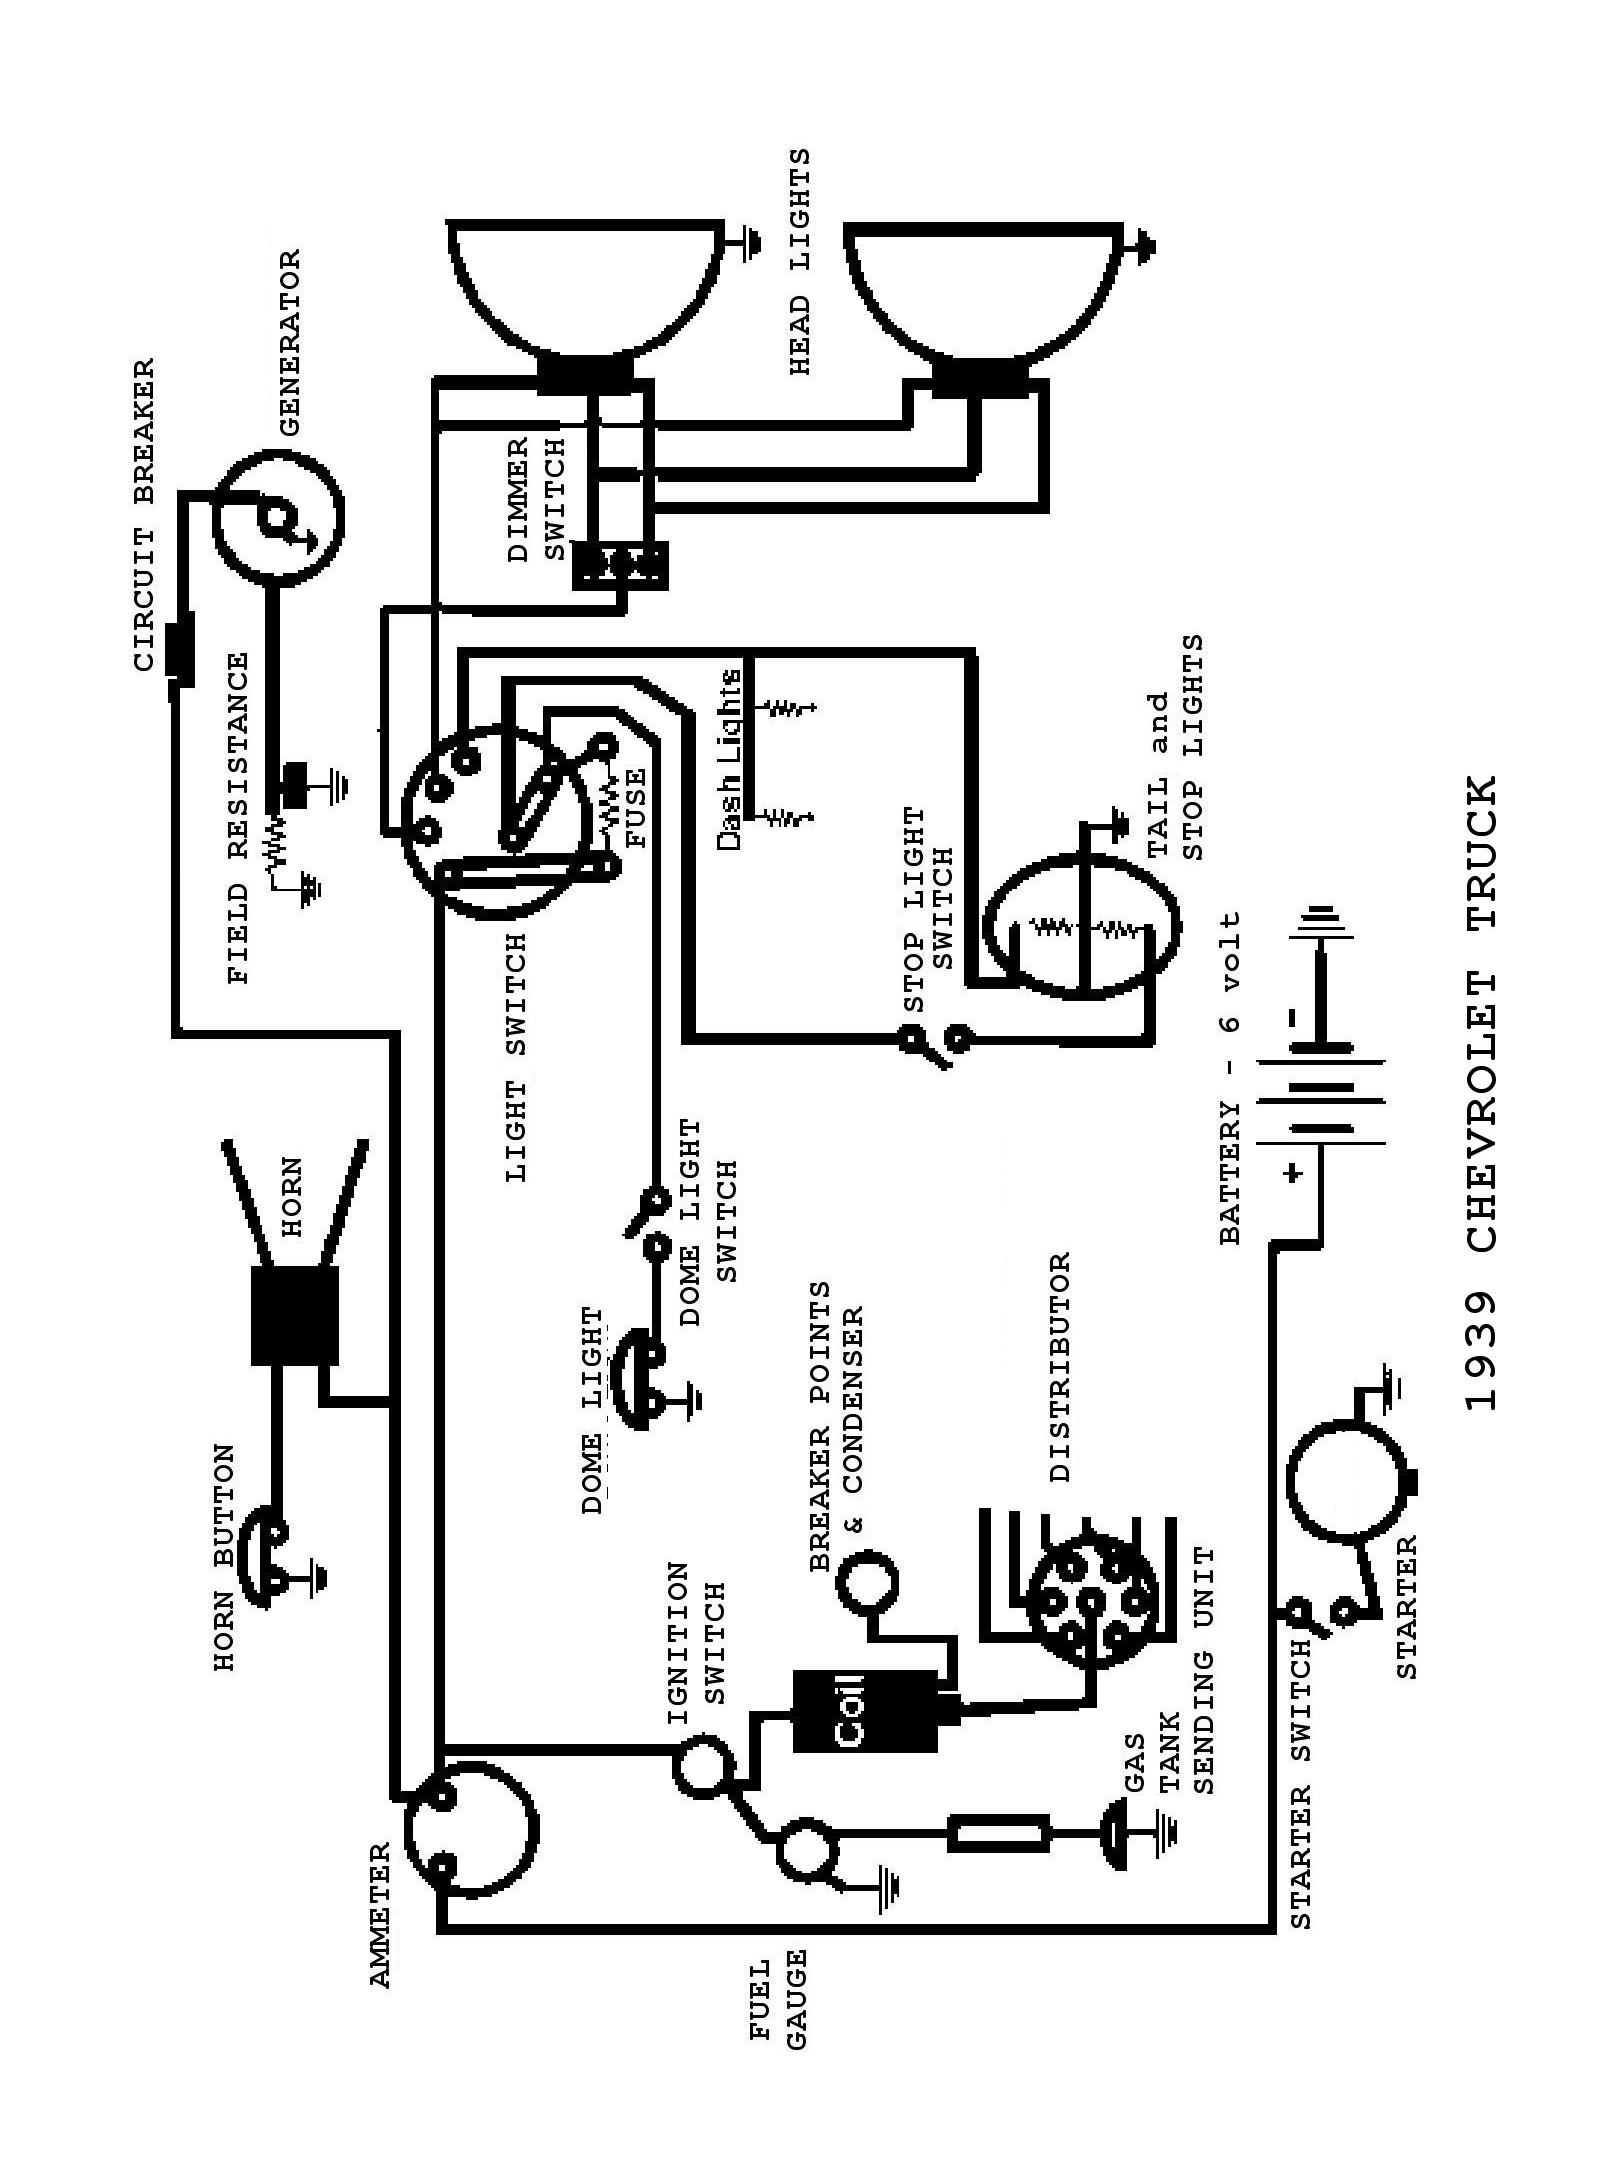 Chevy Wiring Diagrams 2000 Gmc Sierra Diagram P 1939 Truck